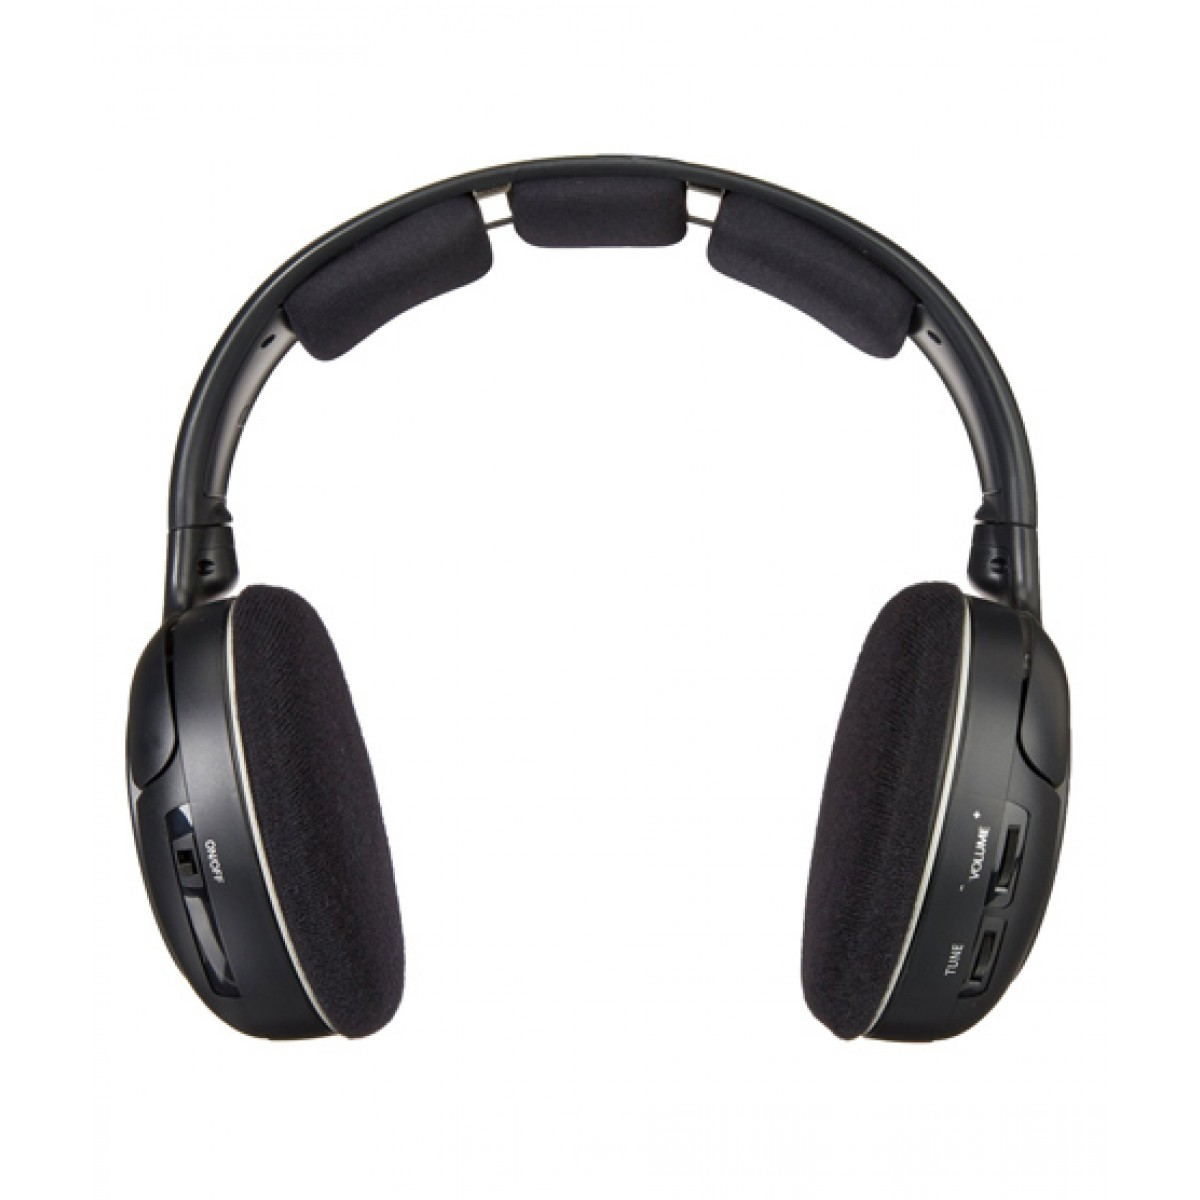 5c0a0b64322 Sennheiser Wireless Headphone Price in Pakistan | Buy Sennheiser Headphone ( RS-120-II) iShopping.pk